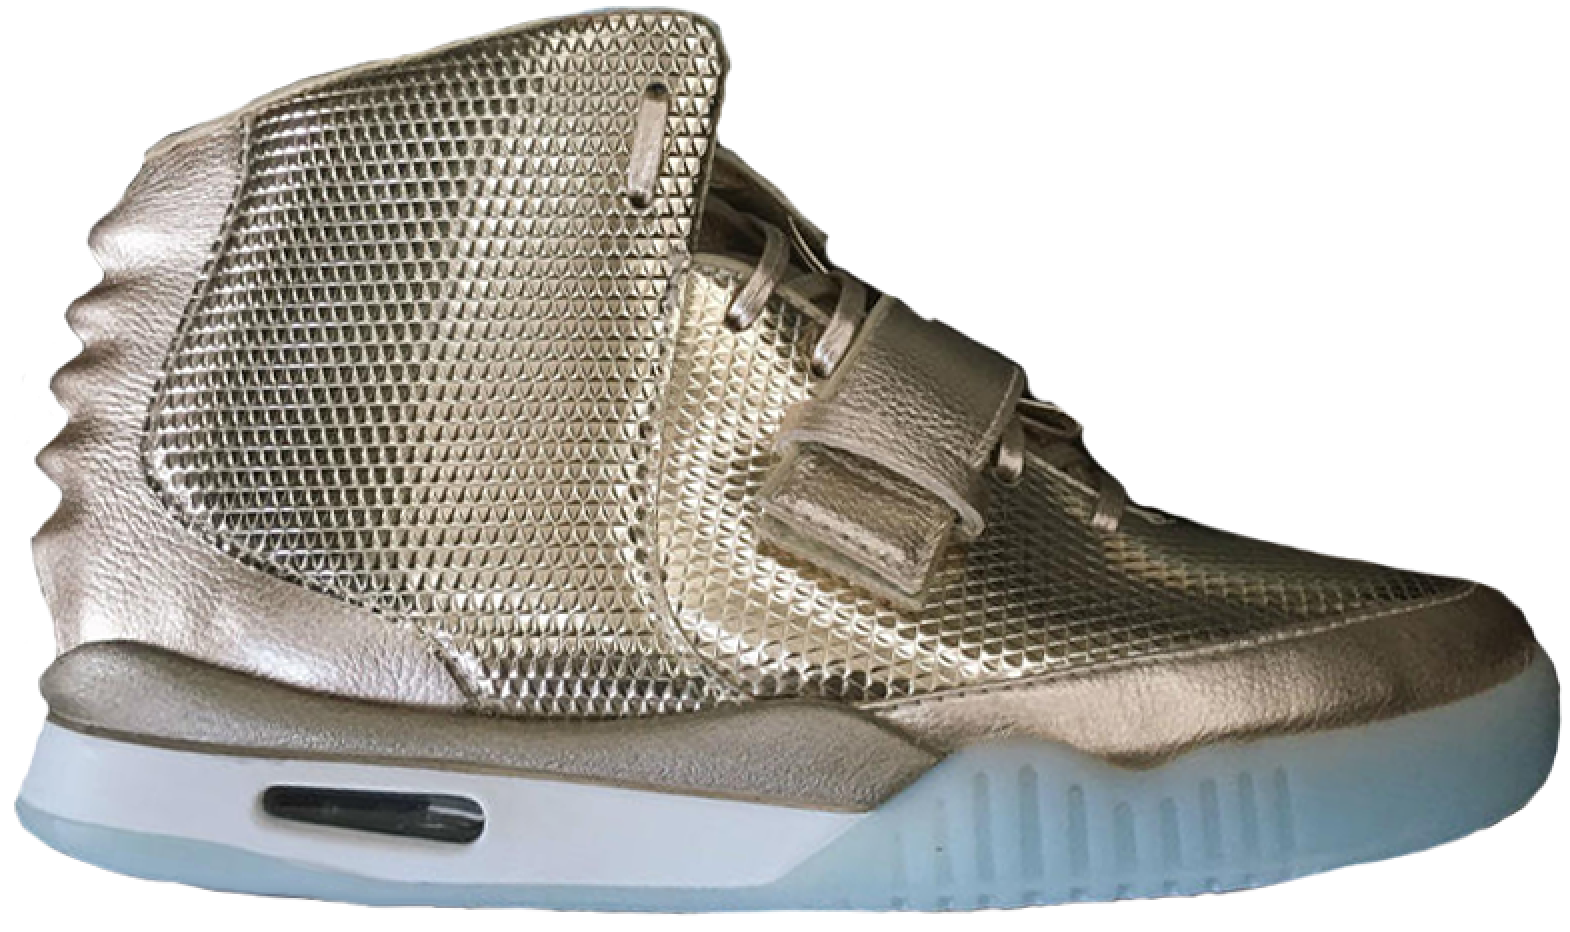 db30ef8a Check out the Air Yeezy 2 John Geiger x LASCO Golden Child available on  StockX